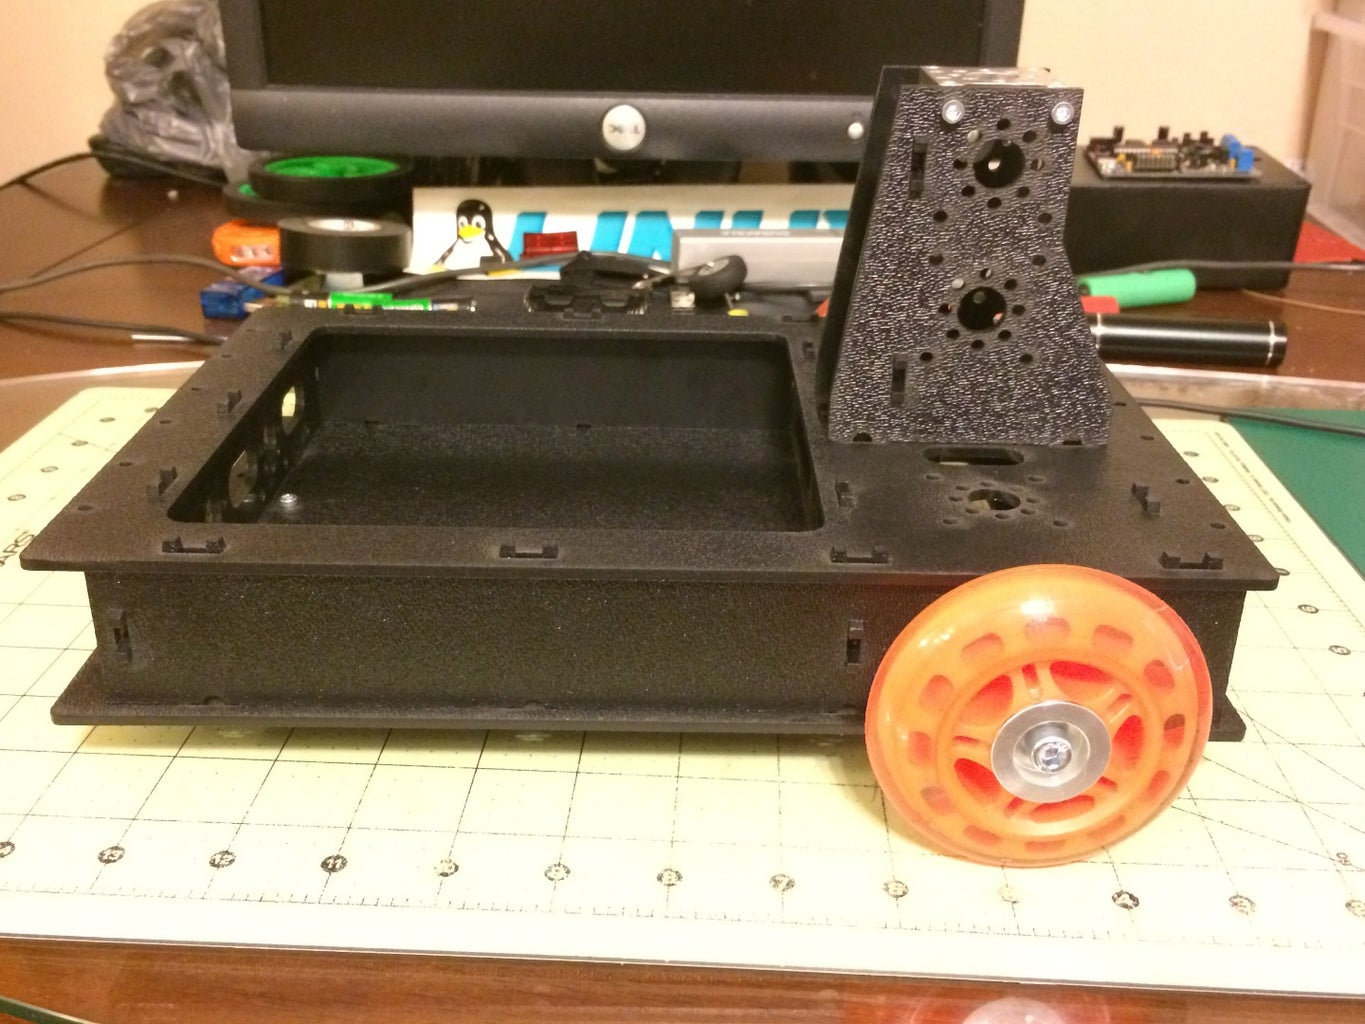 Assembling the Chassis